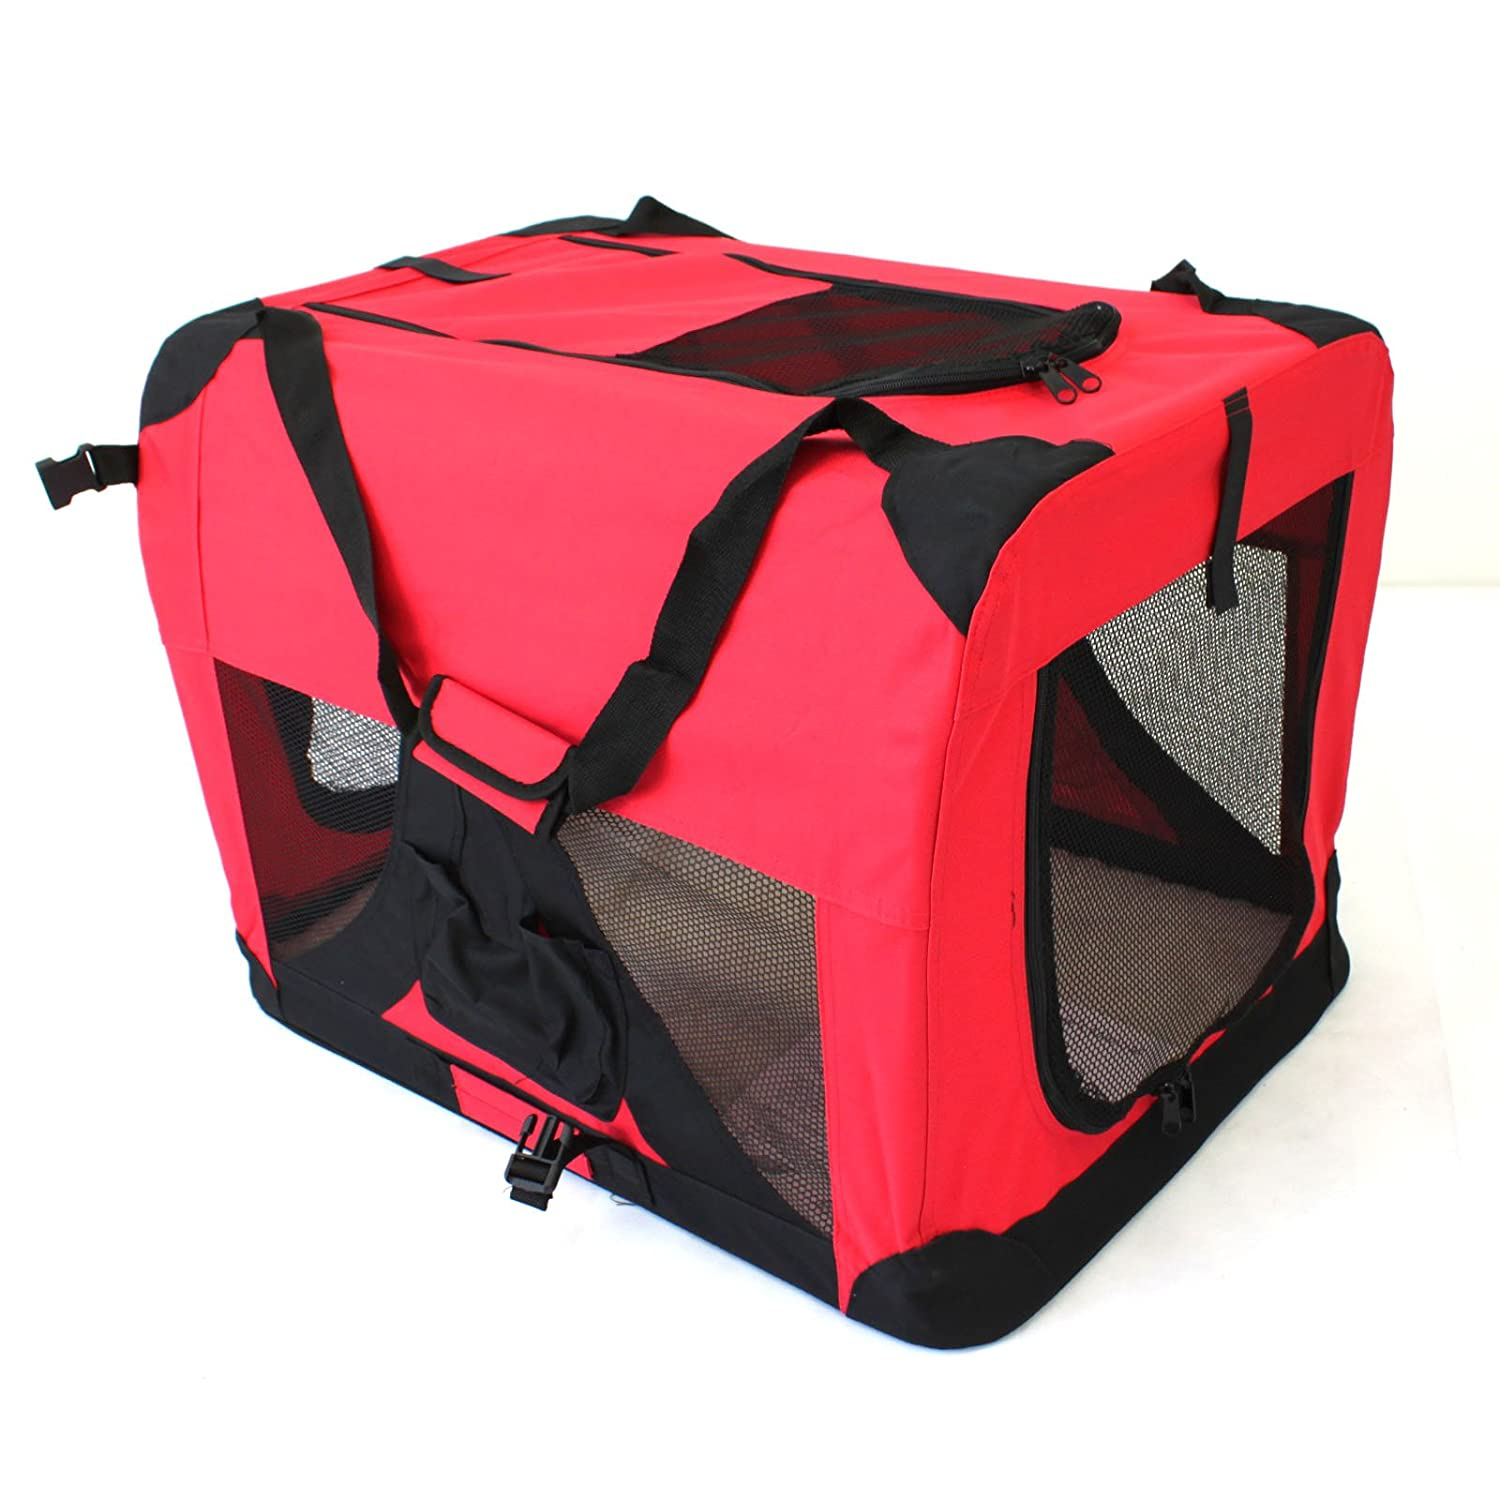 Large 70x50cm Pet Travel Carrier Soft Crate Portable Puppy Dog Cat Kitten Cage Kennel Home House Red (Large 70x50cm)